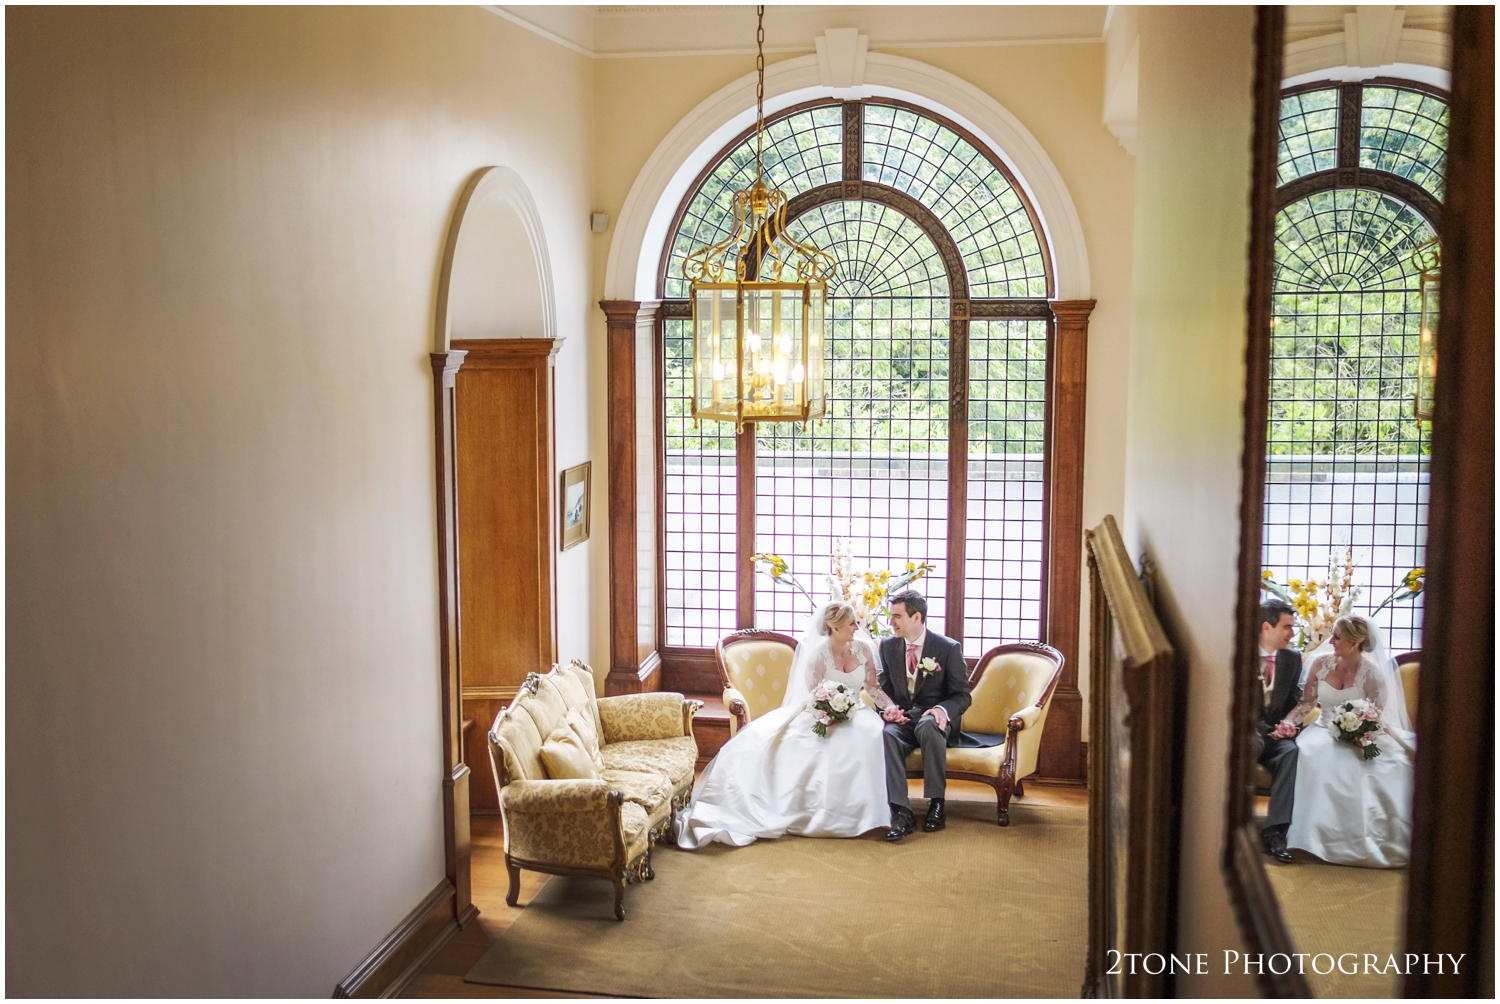 Staying out of the way of the bad weather, we made great use of the interior space of Doxford Hall for some beautiful photographs. The huge window on the stairs and a mirrormakes a great photograph opportunity.